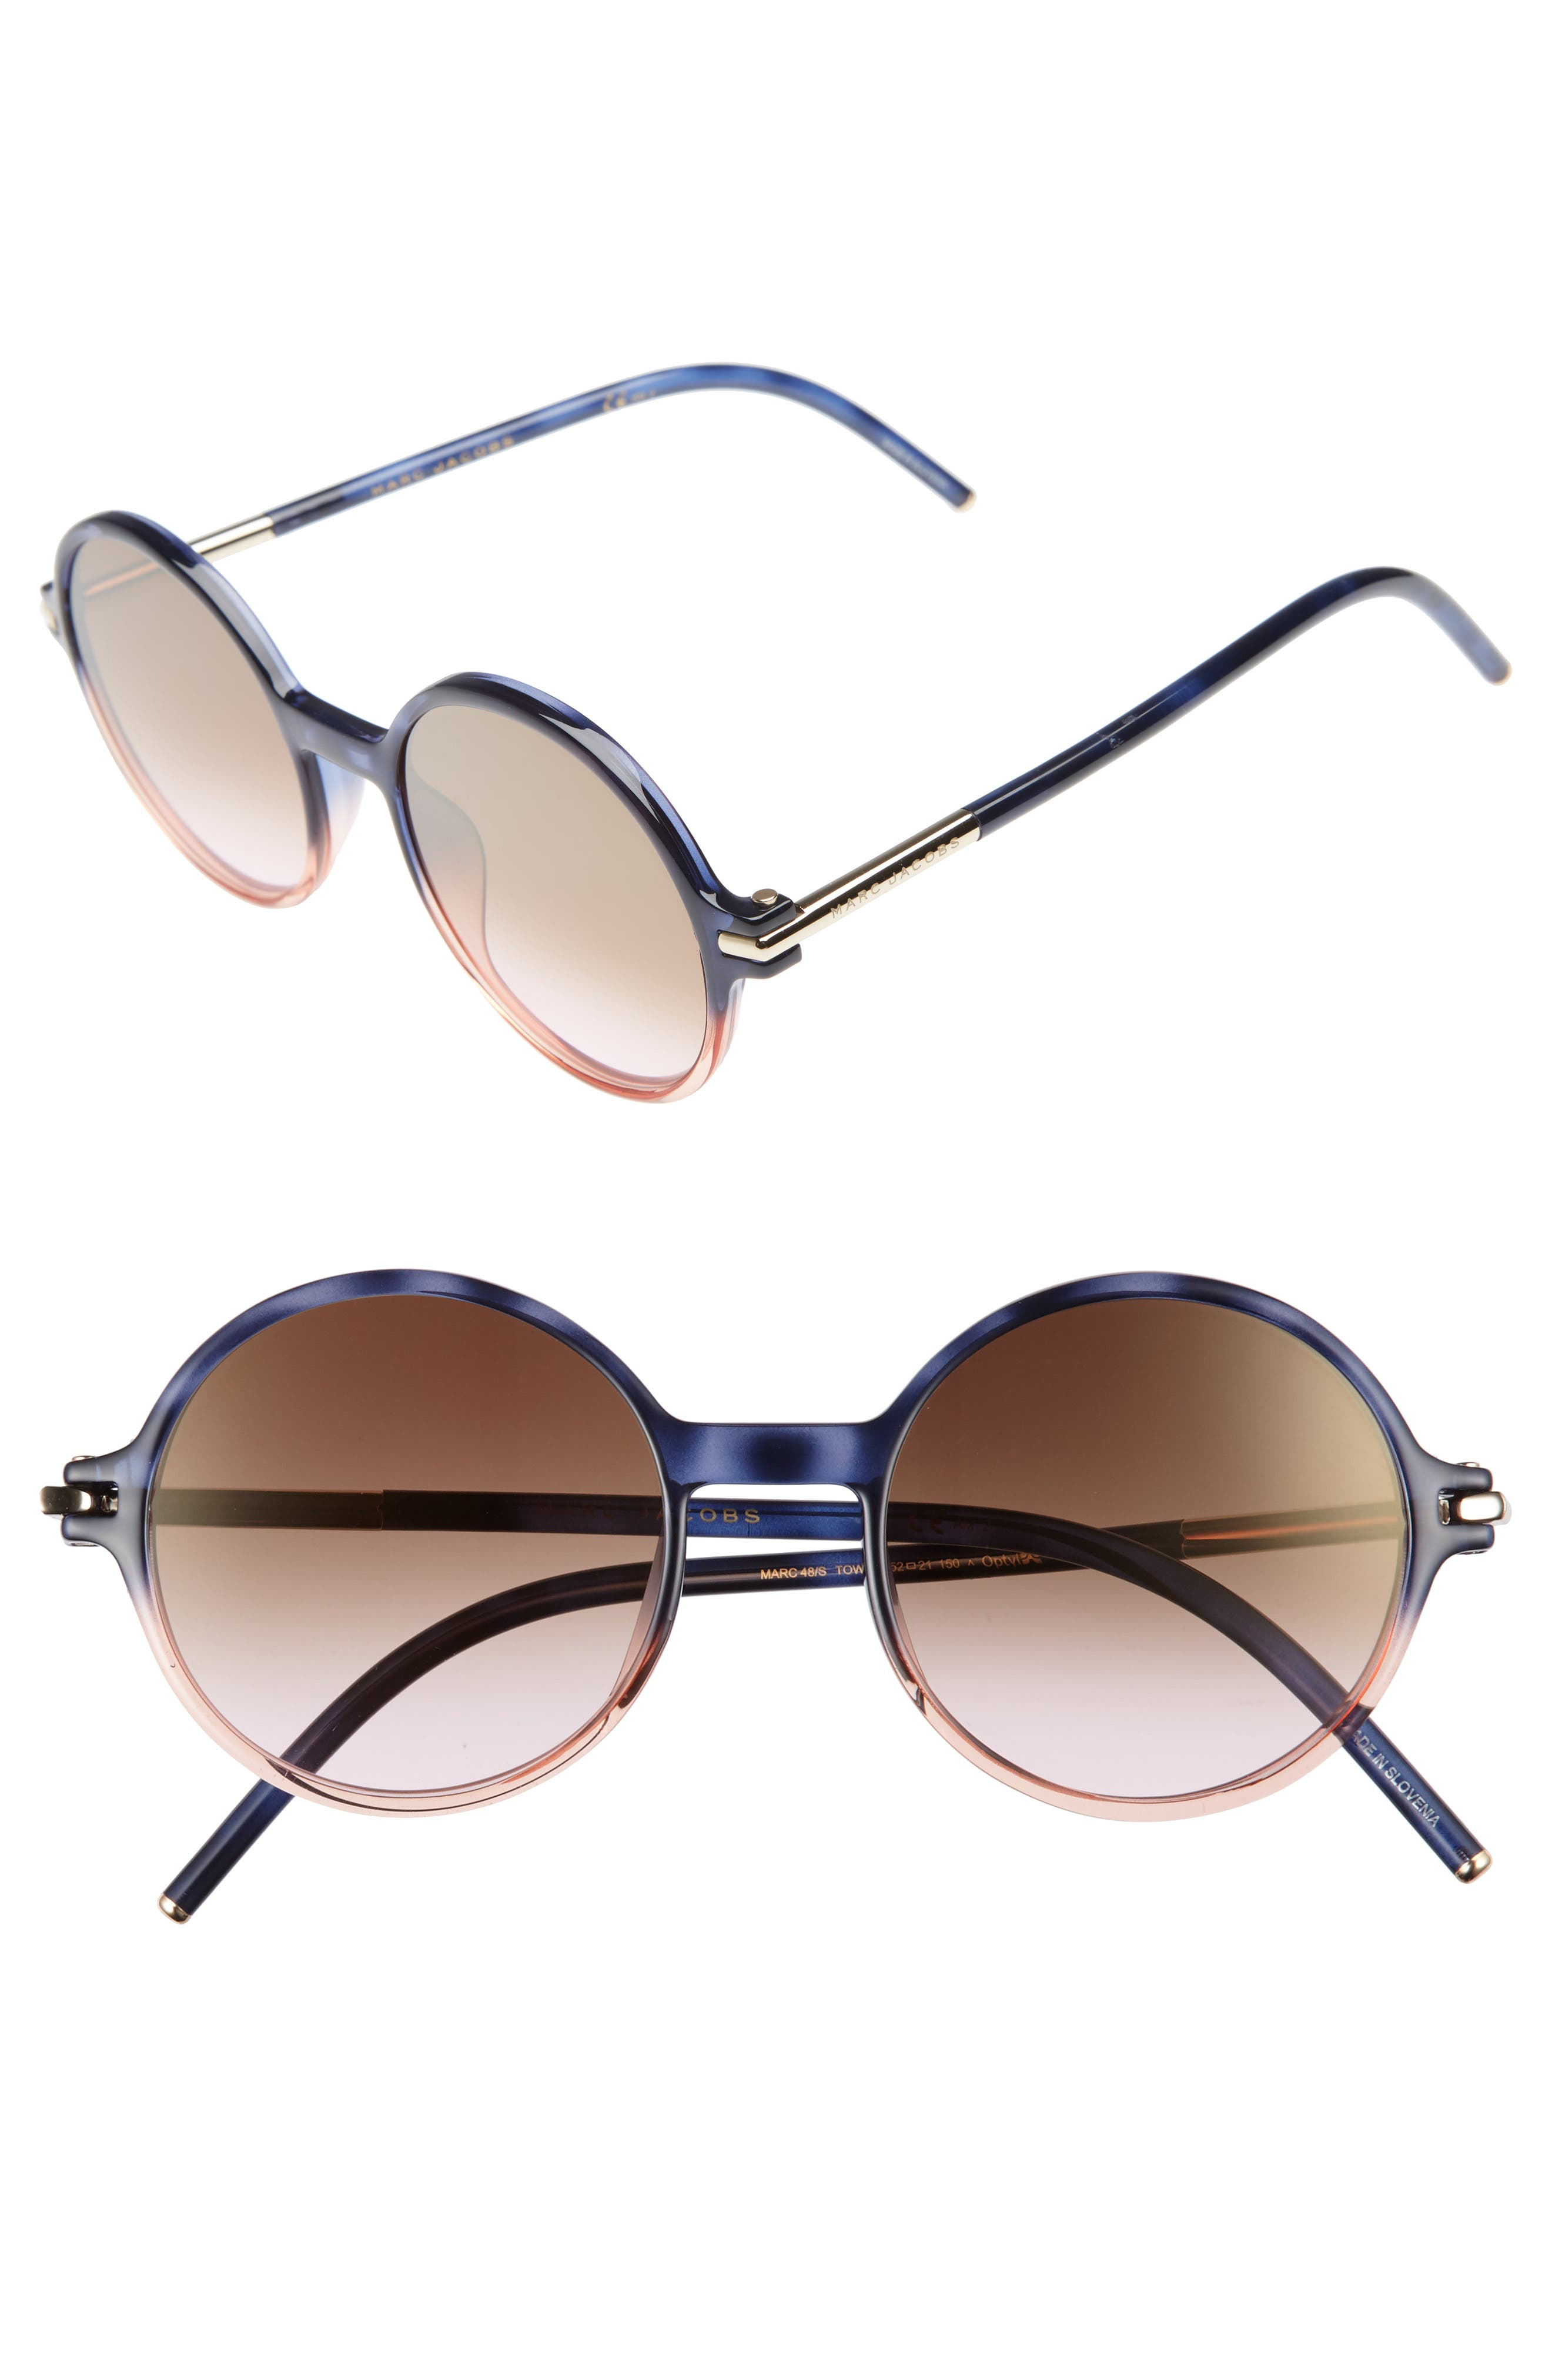 52mm Round Sunglasses,                             Main thumbnail 2, color,